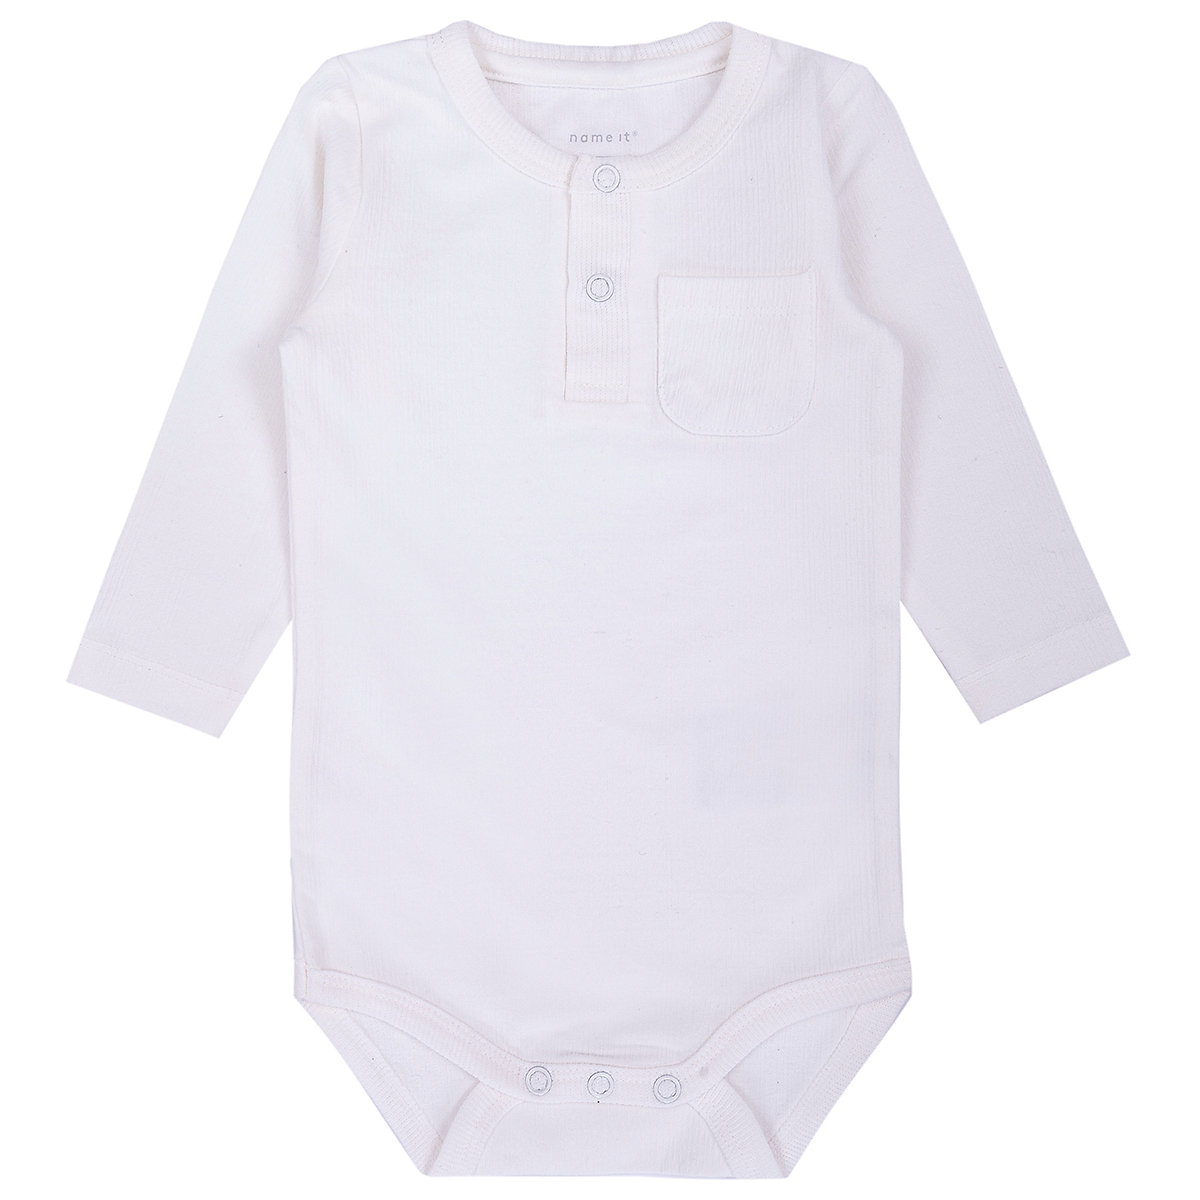 NAME IT Bodysuits 10624795 Baby Clothing Bodysuit For Boys And Girls